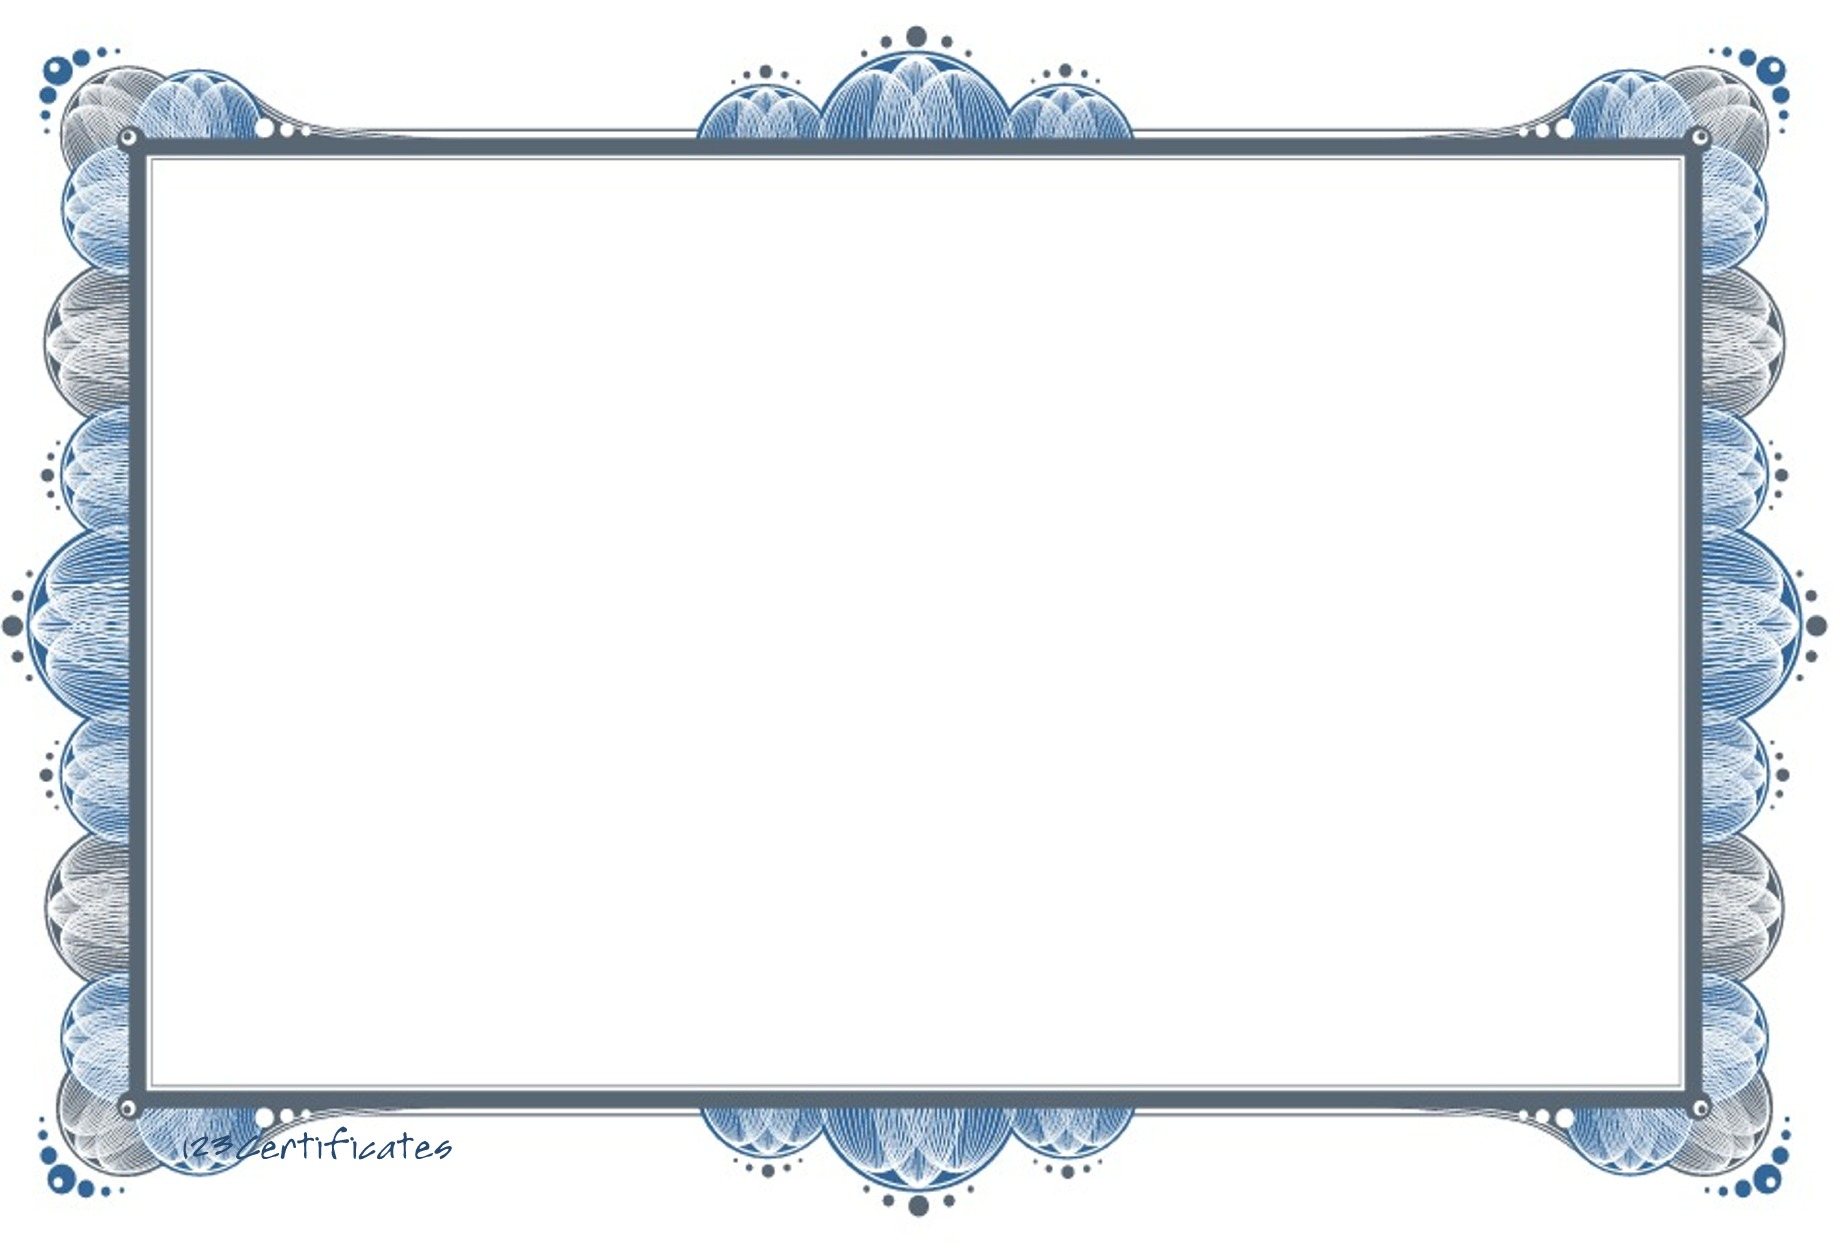 certificate borders to certificate templates for certificate borders · landscape jpg file